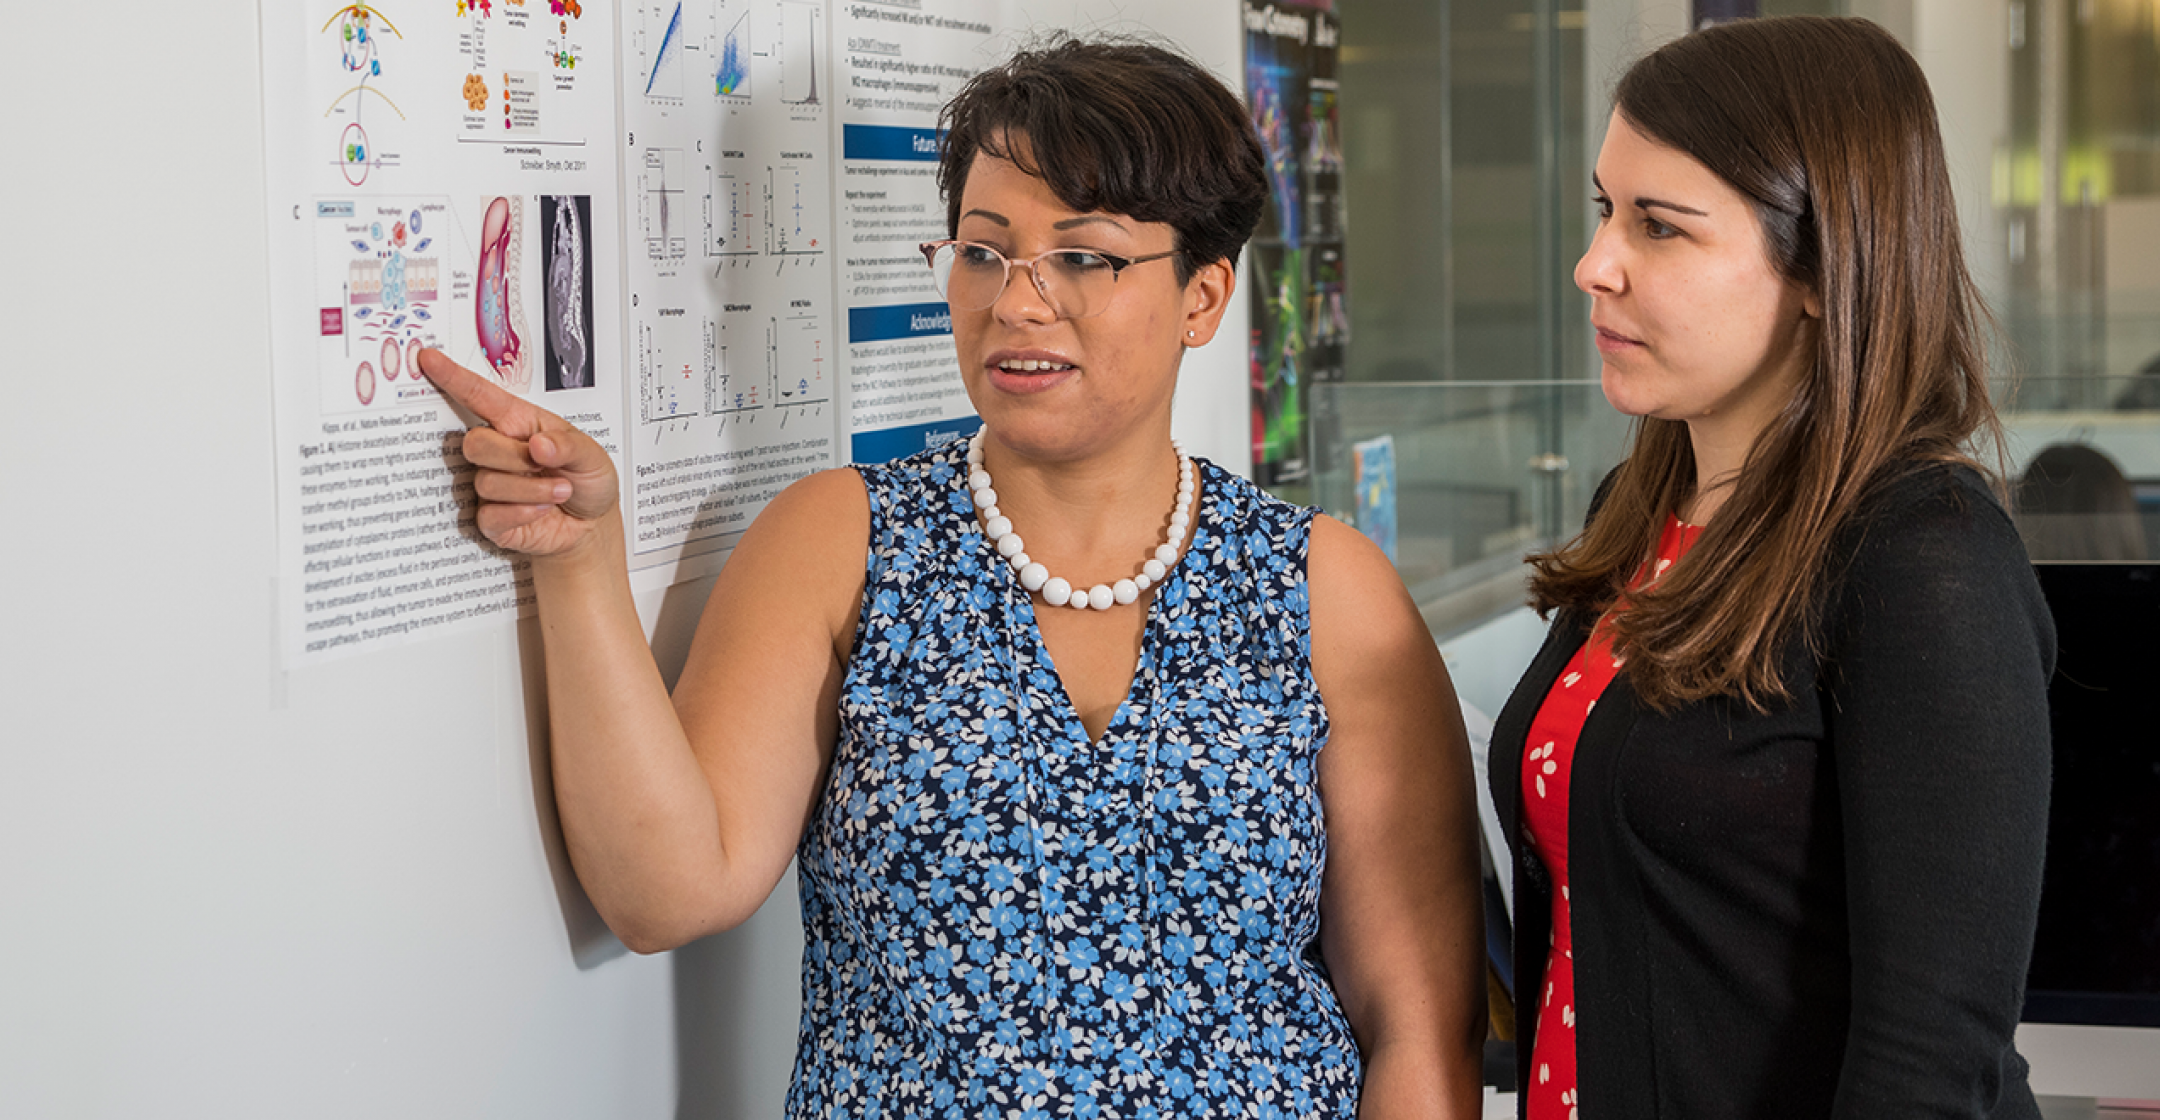 Kate Chiapinelli, PhD Looking at Research Days Poster Presentation